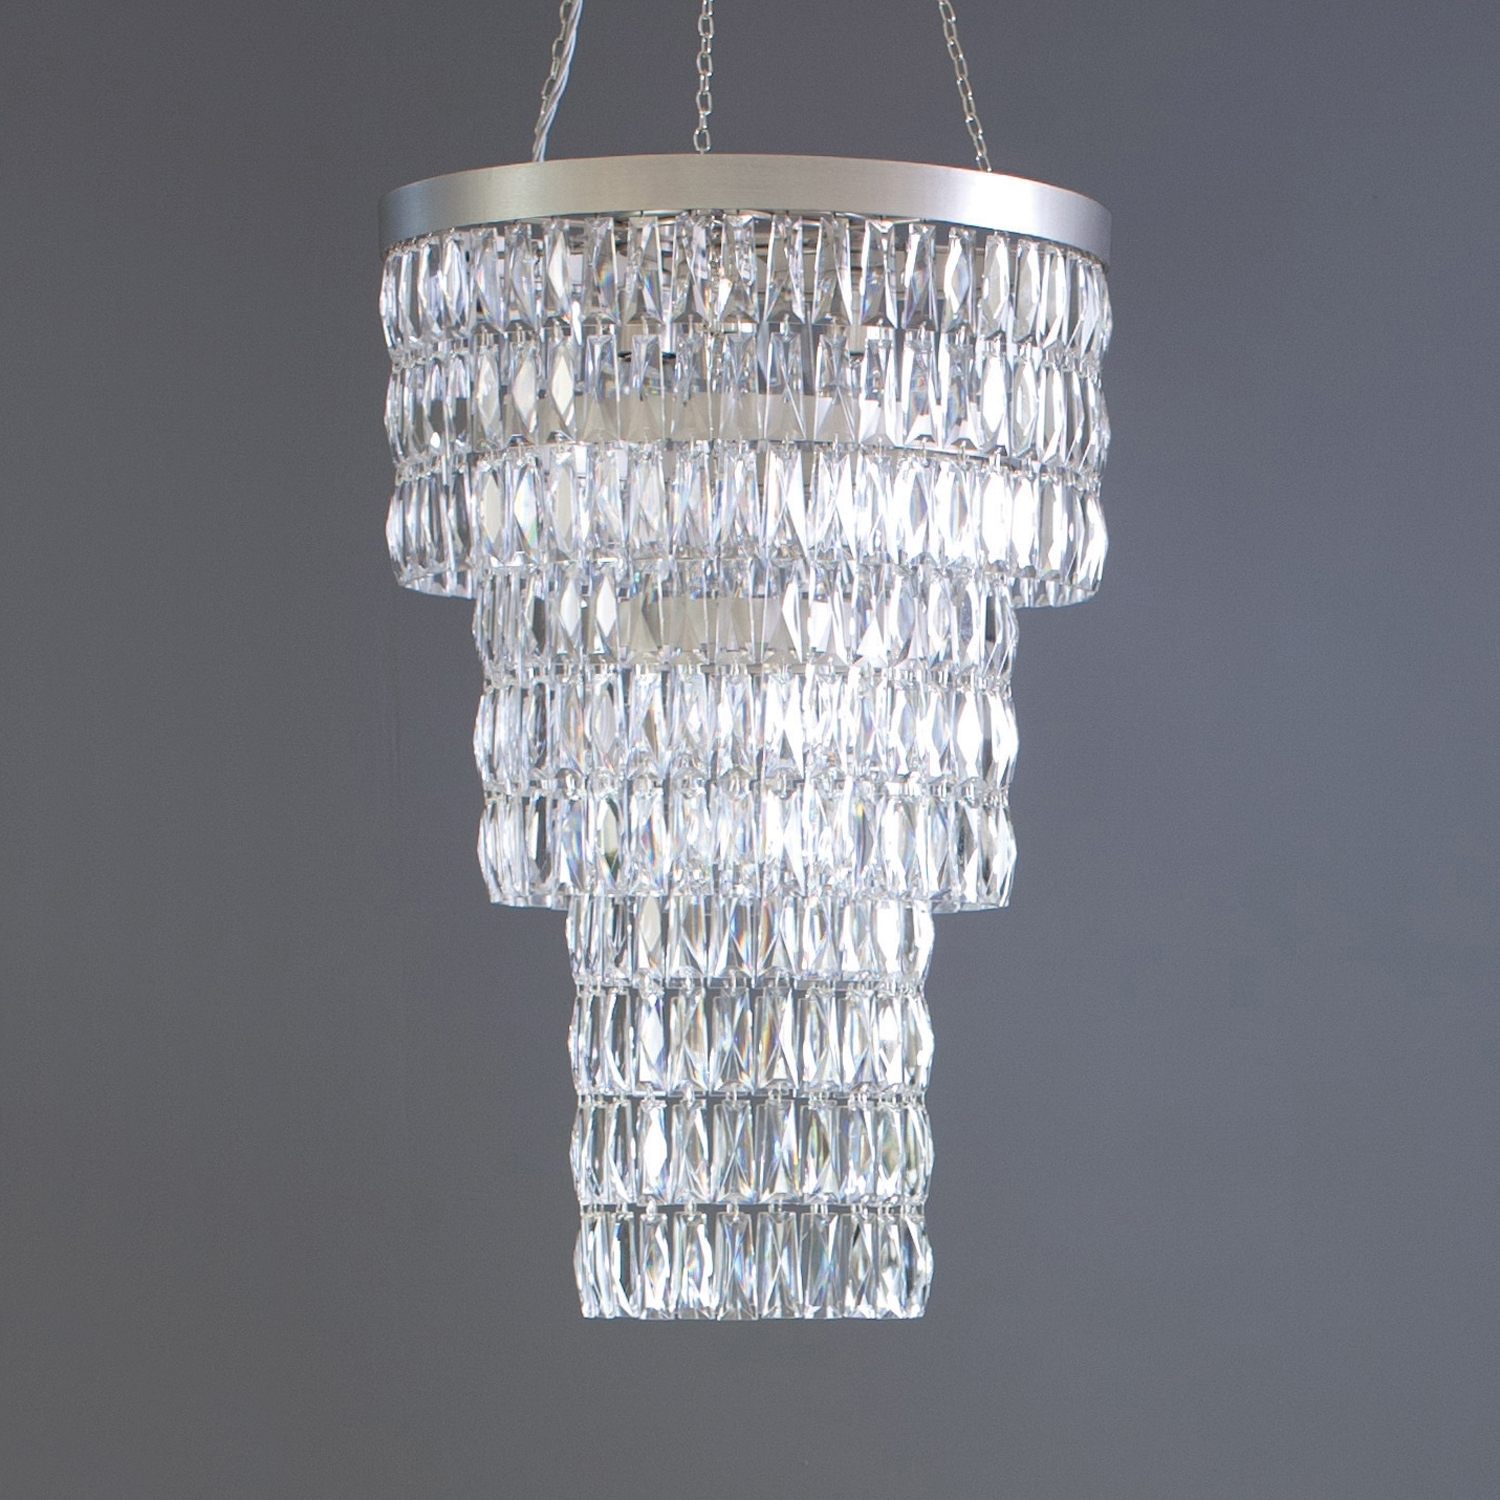 Long Chandelier Within Trendy Clear Crystal Long Chandelier – Tigermoth Lighting (View 13 of 15)